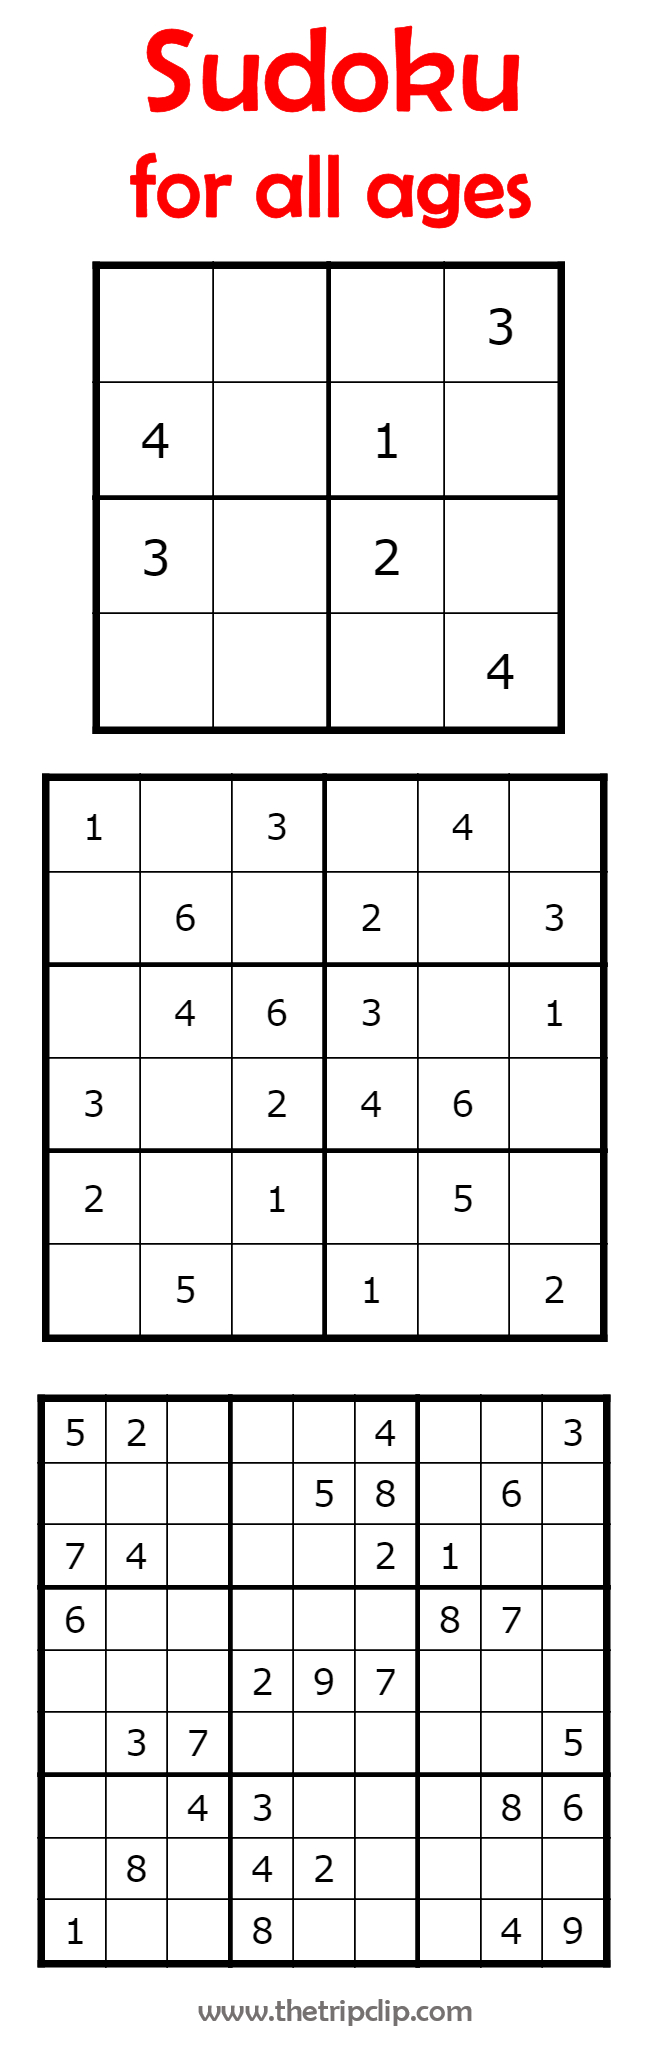 Sudoku For All Ages Plus Lots Of Other Printable Activities For Kids - Printable Puzzles 4X4